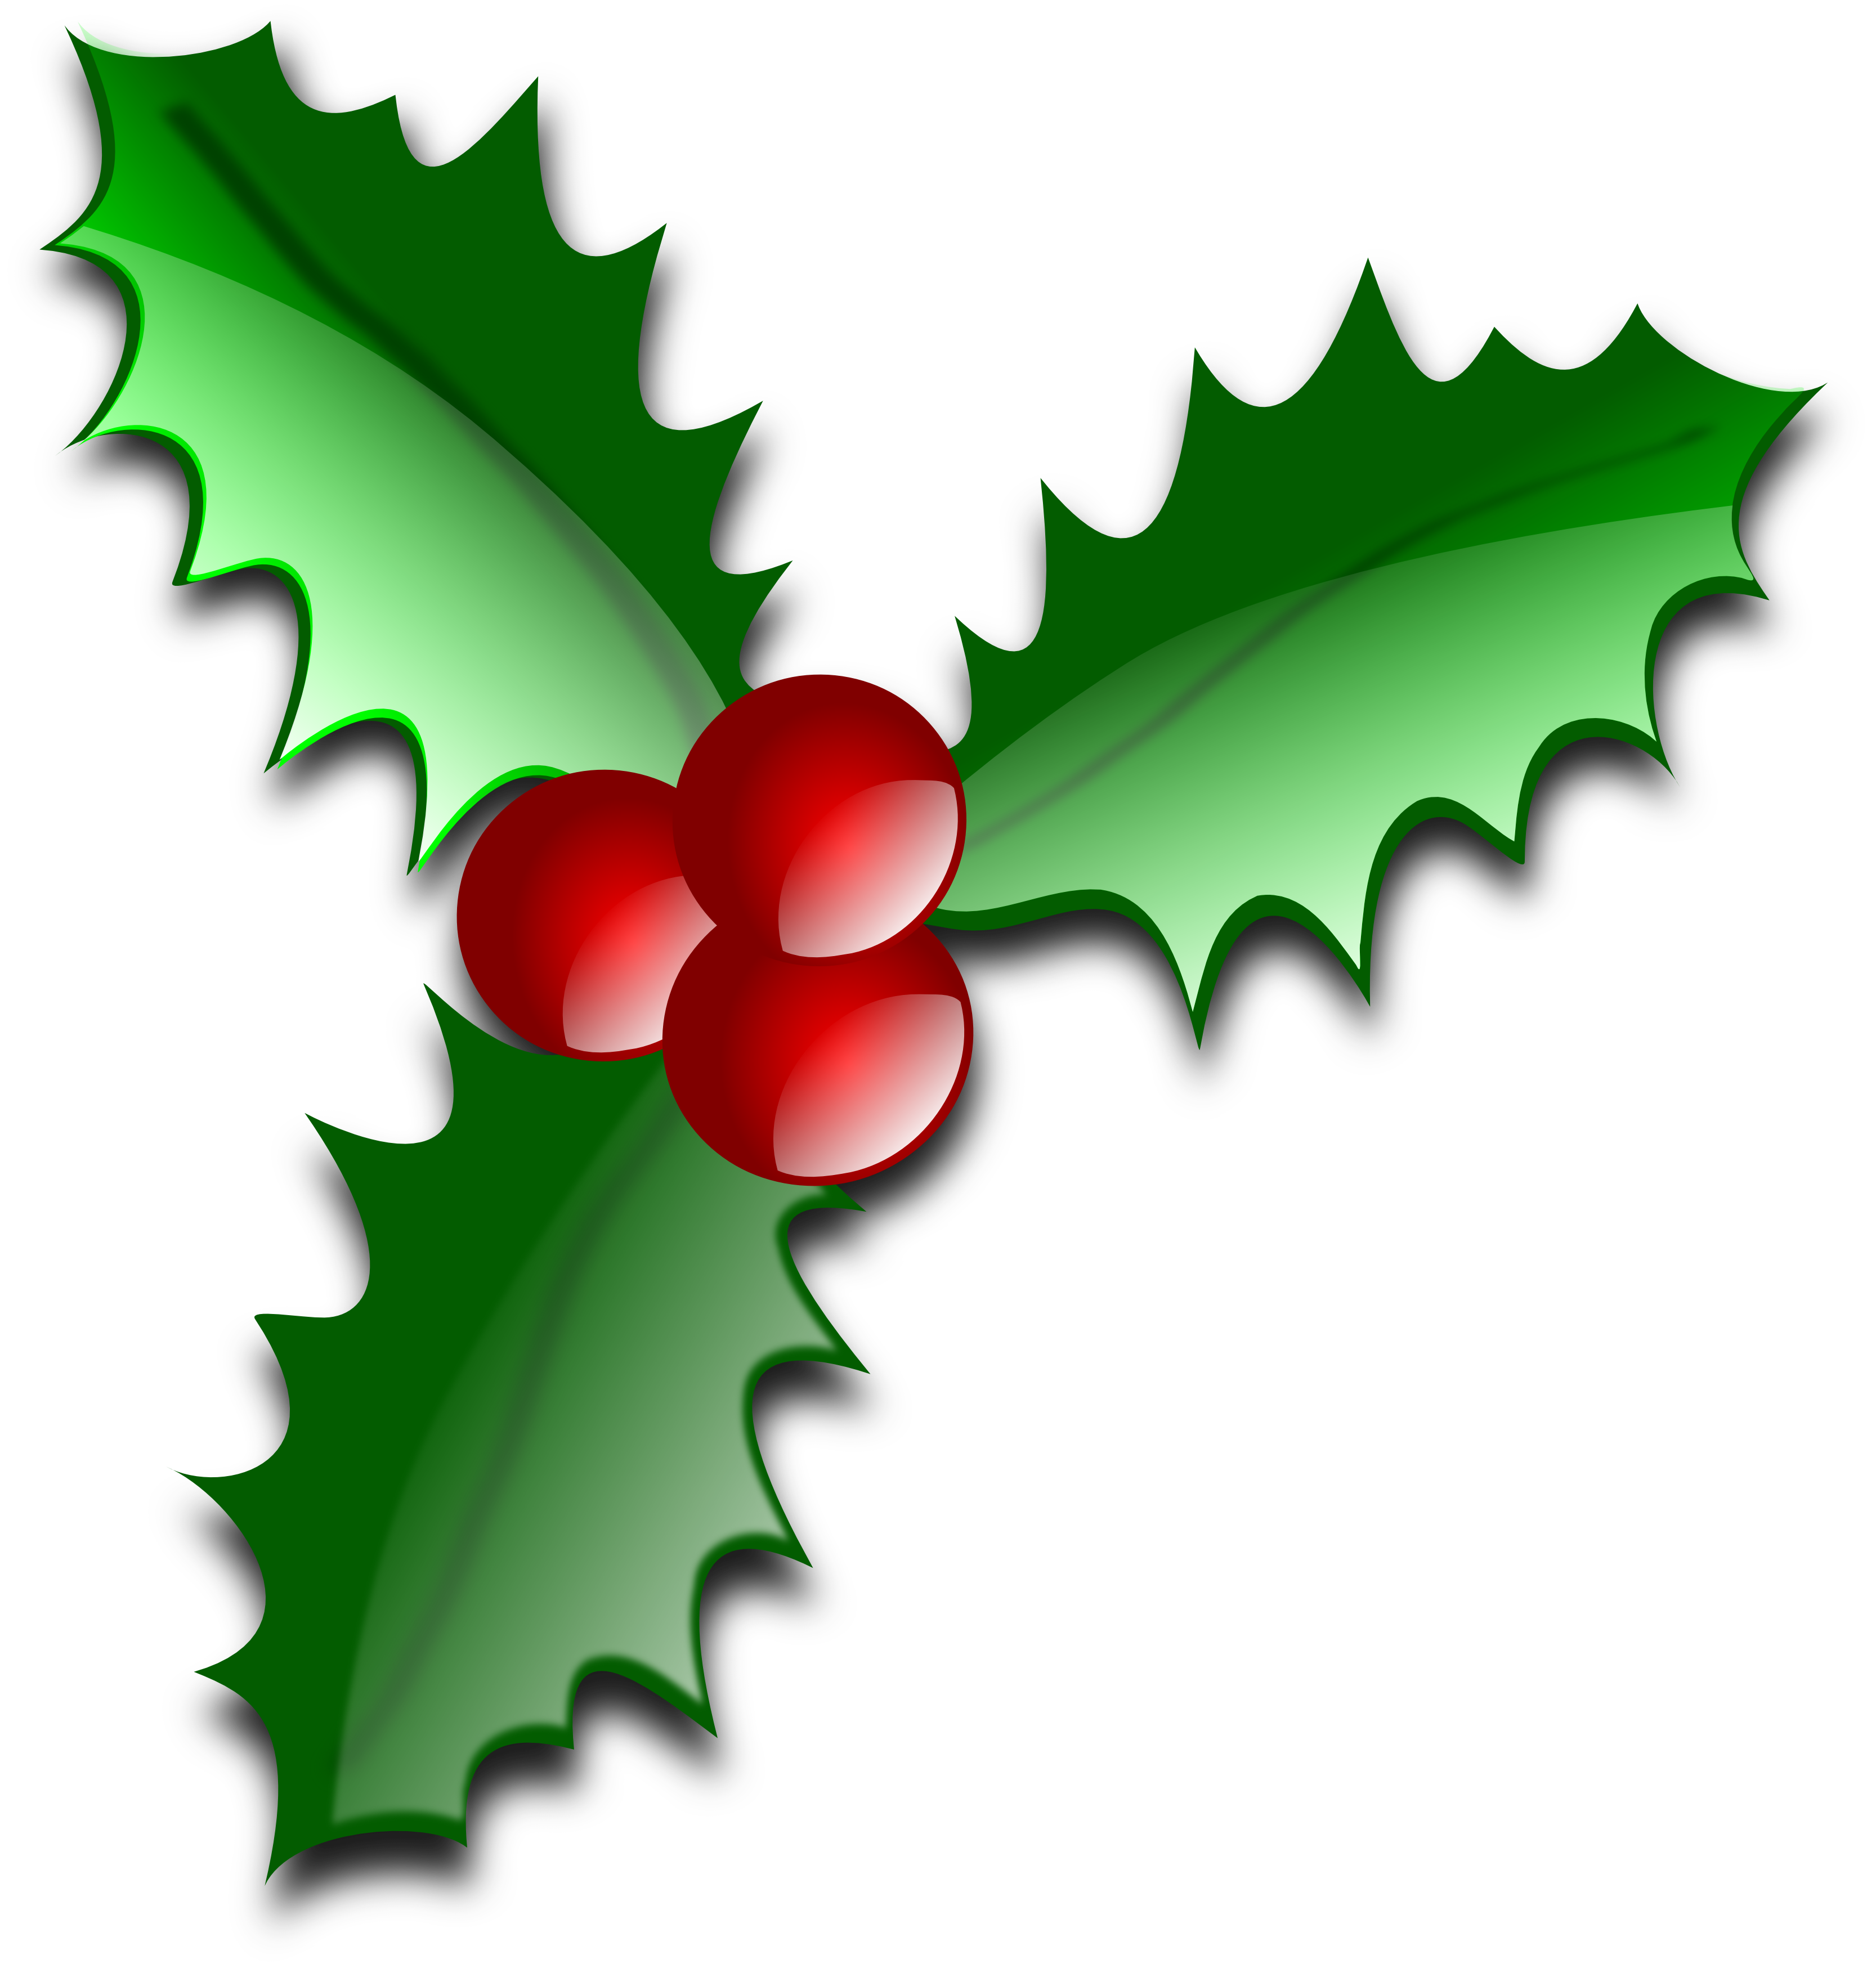 Christmas Holly Border Clipart.Christmas Holly Clipart At Getdrawings Com Free For